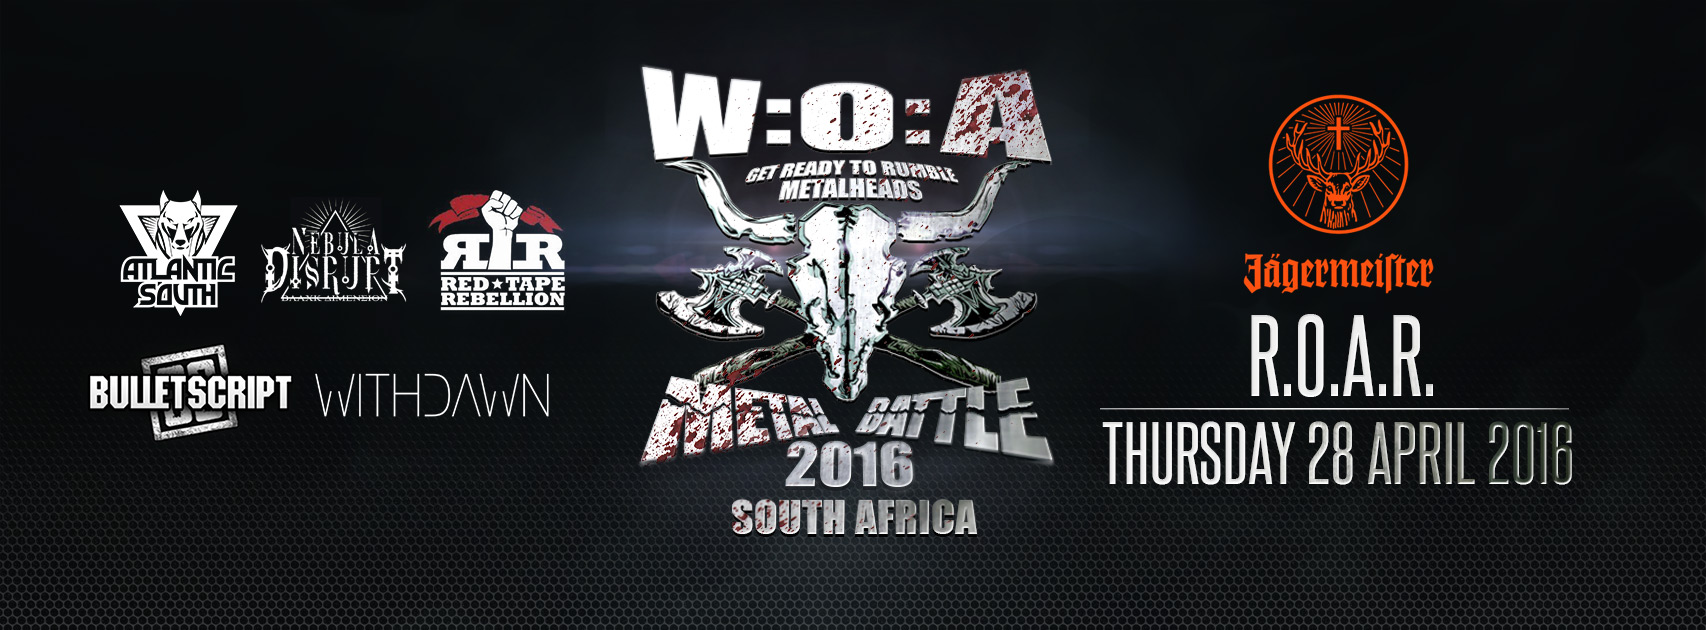 Wacken Battle South Africa